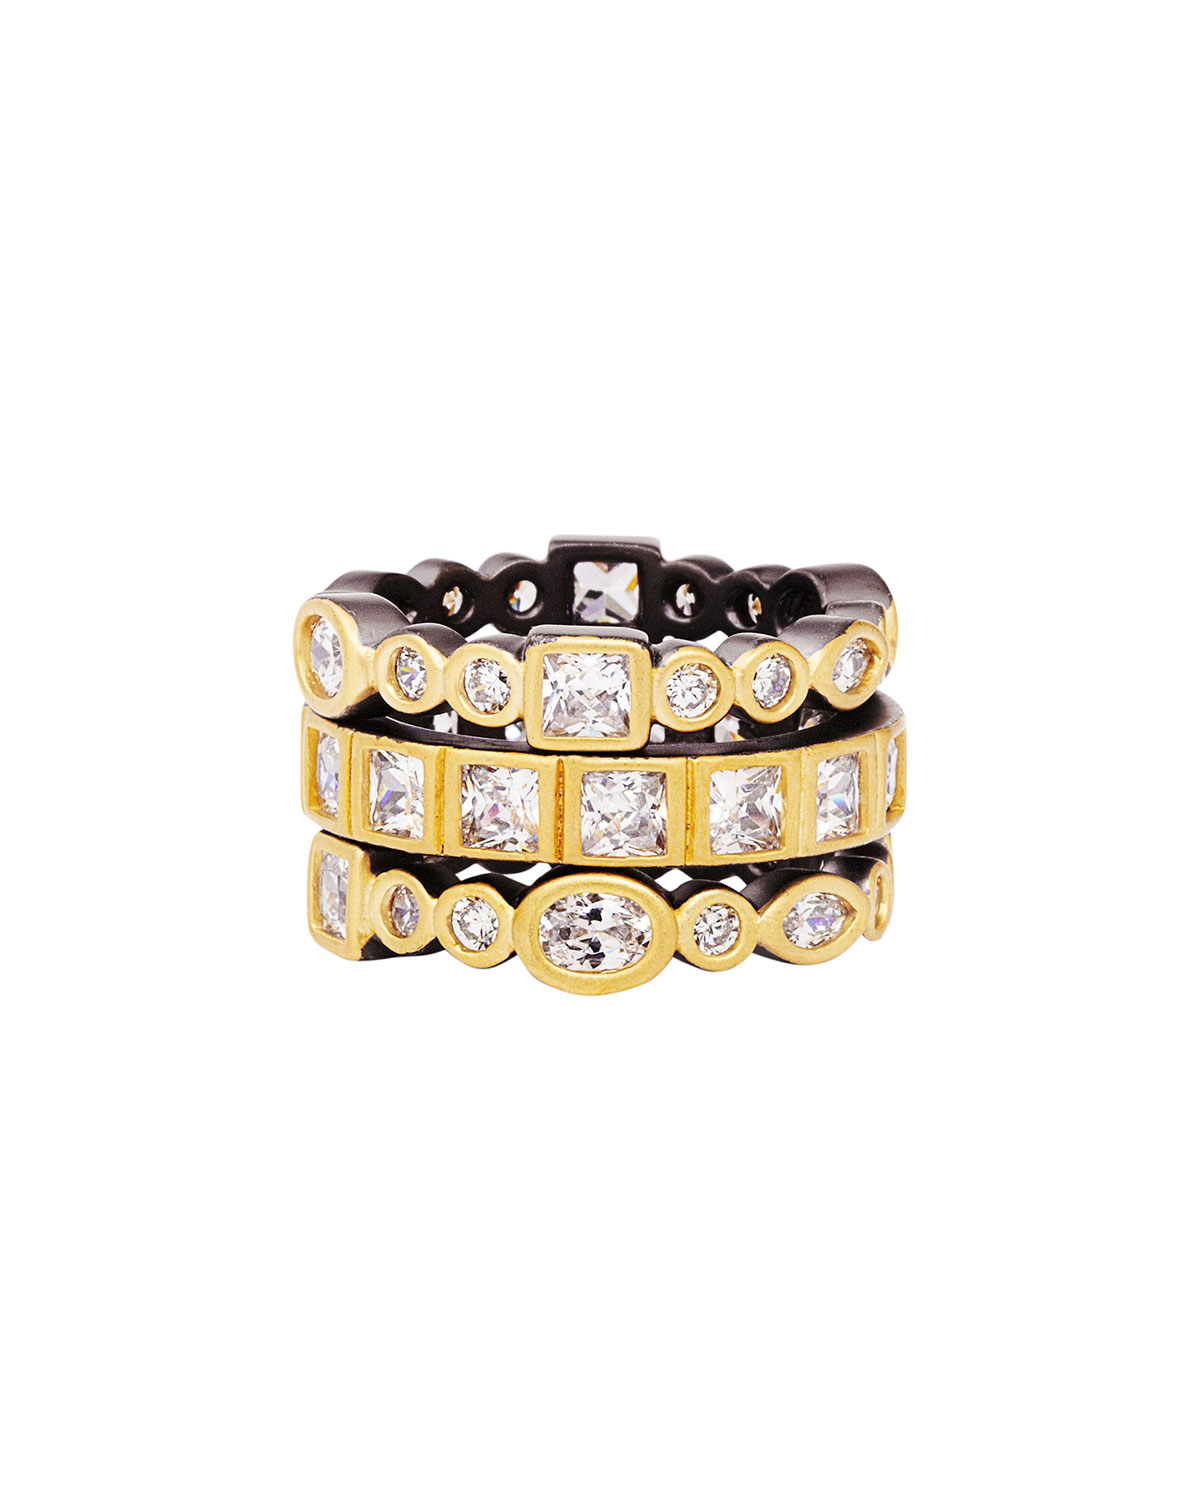 f206bc441e90e Mixed-Stone Radiance Stack Rings, Set of 3, Size 5-9